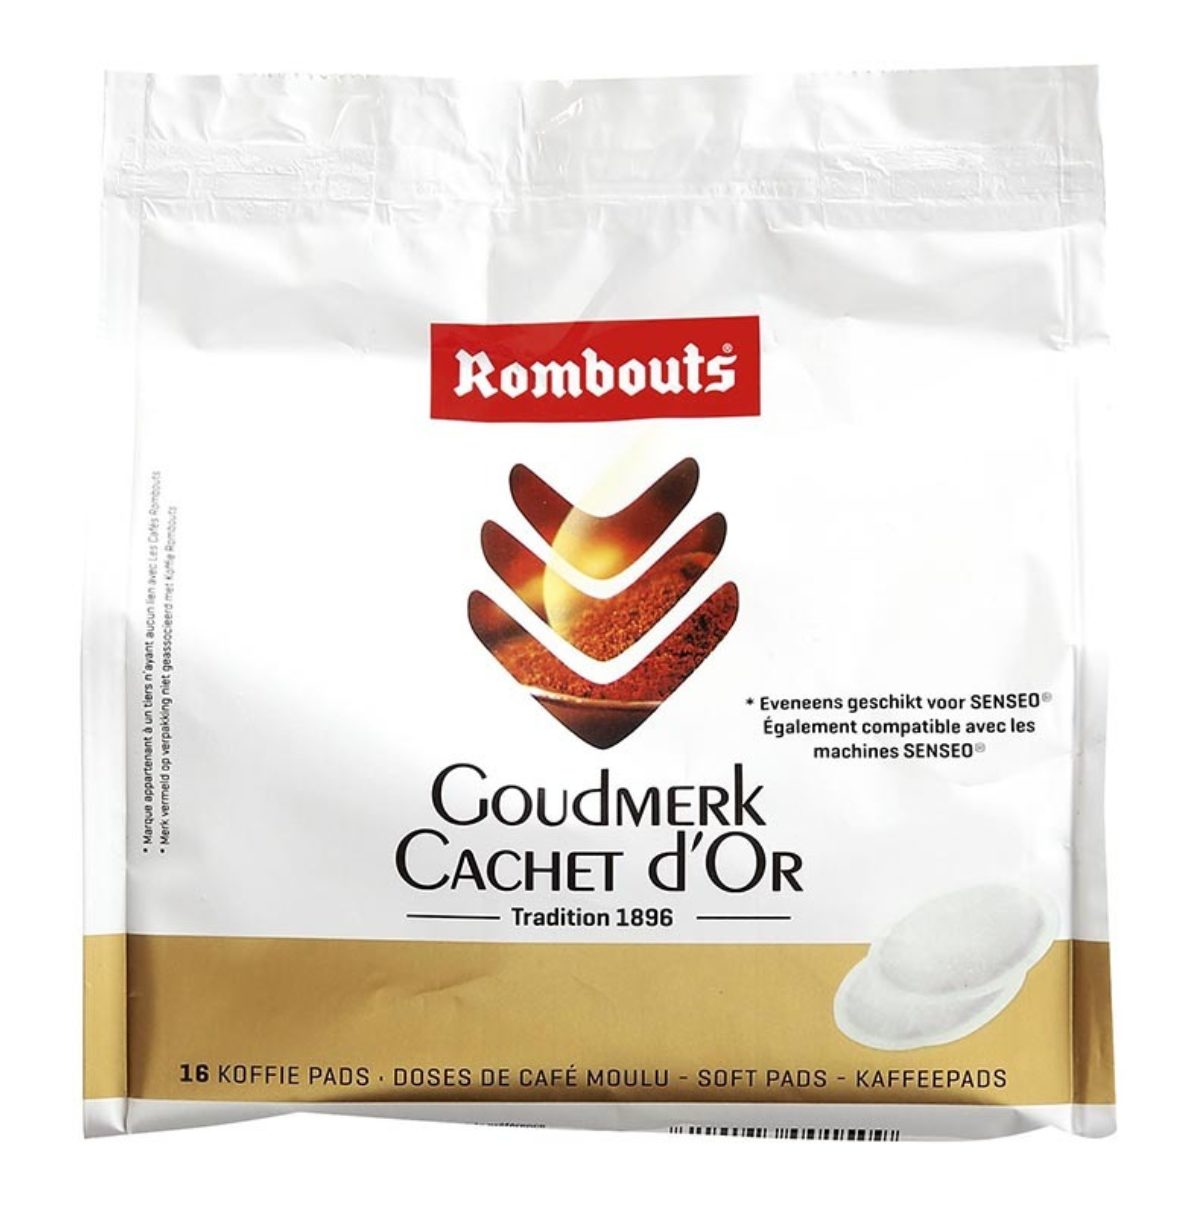 Rombouts 16pad cachet d or